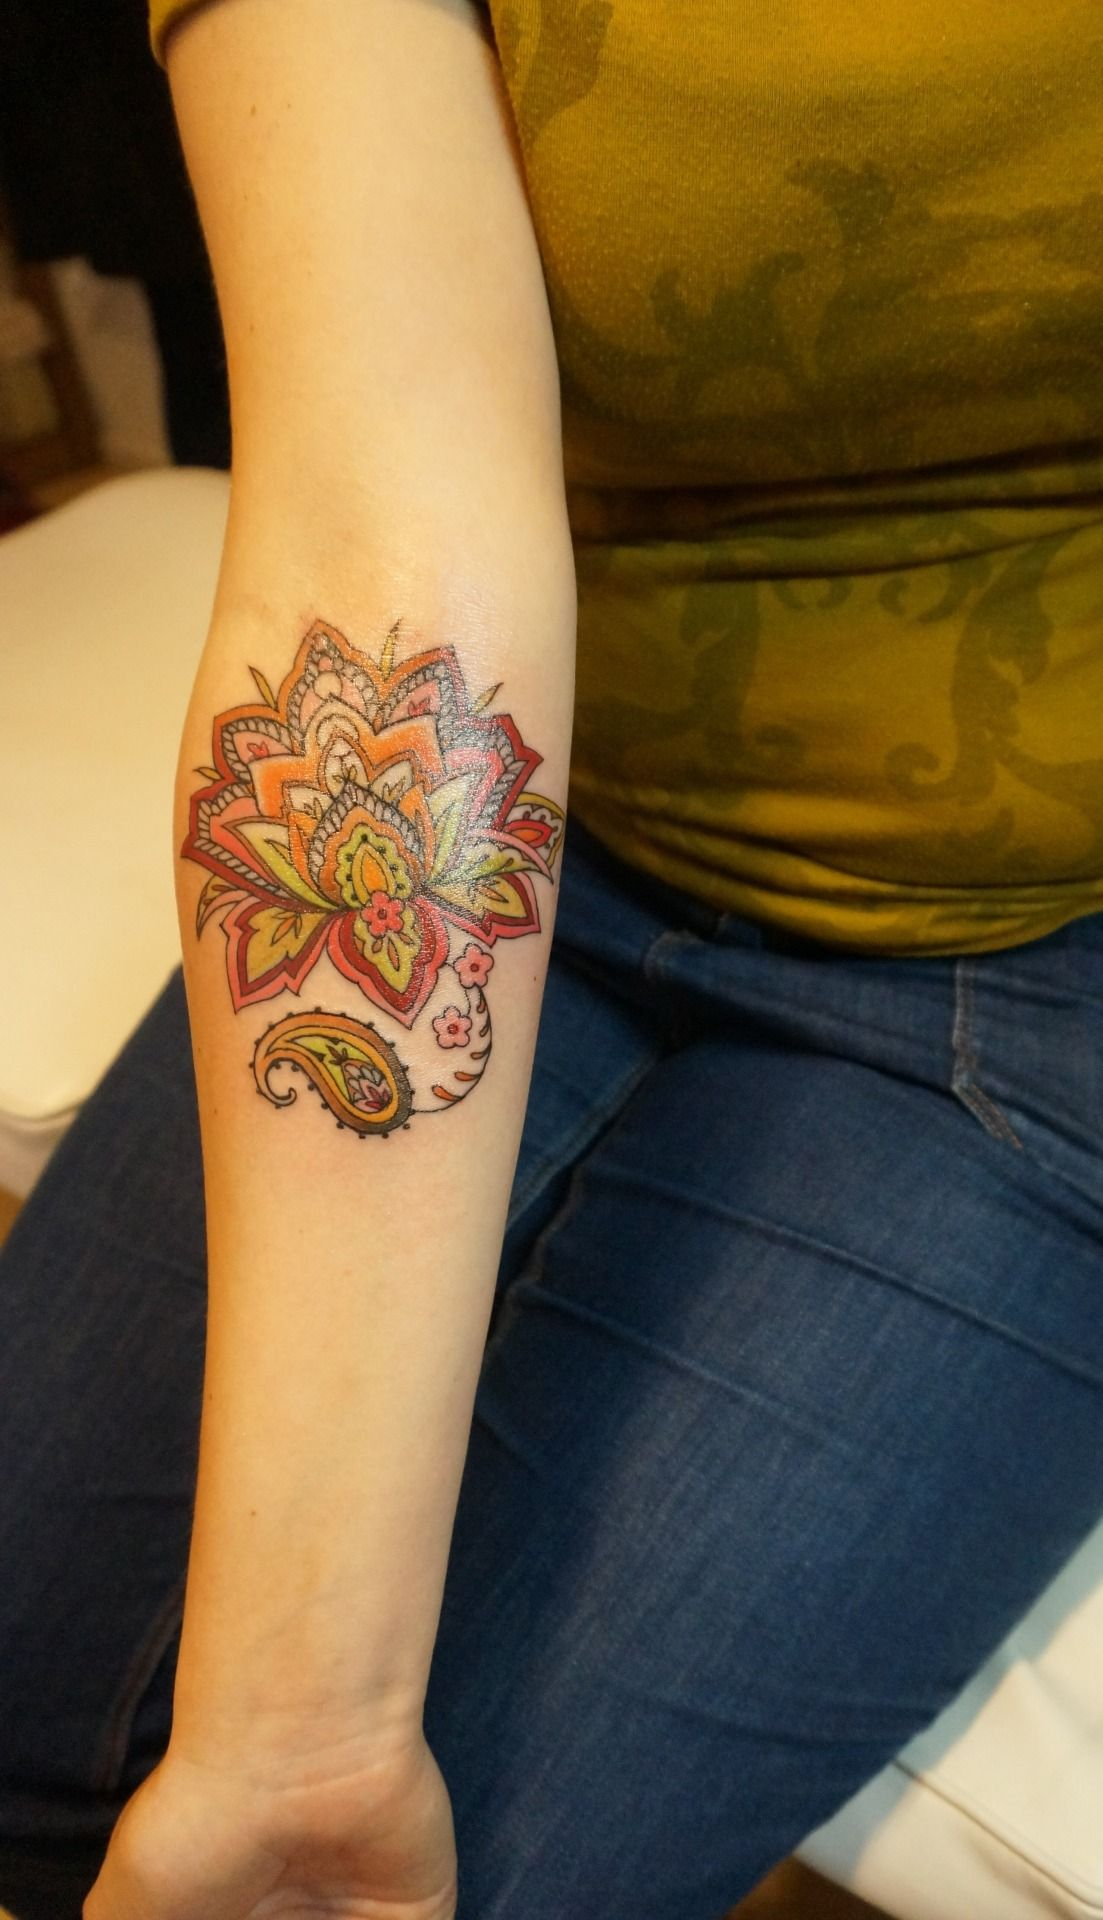 a lotus flower in henna/paisley style Colorful mandala